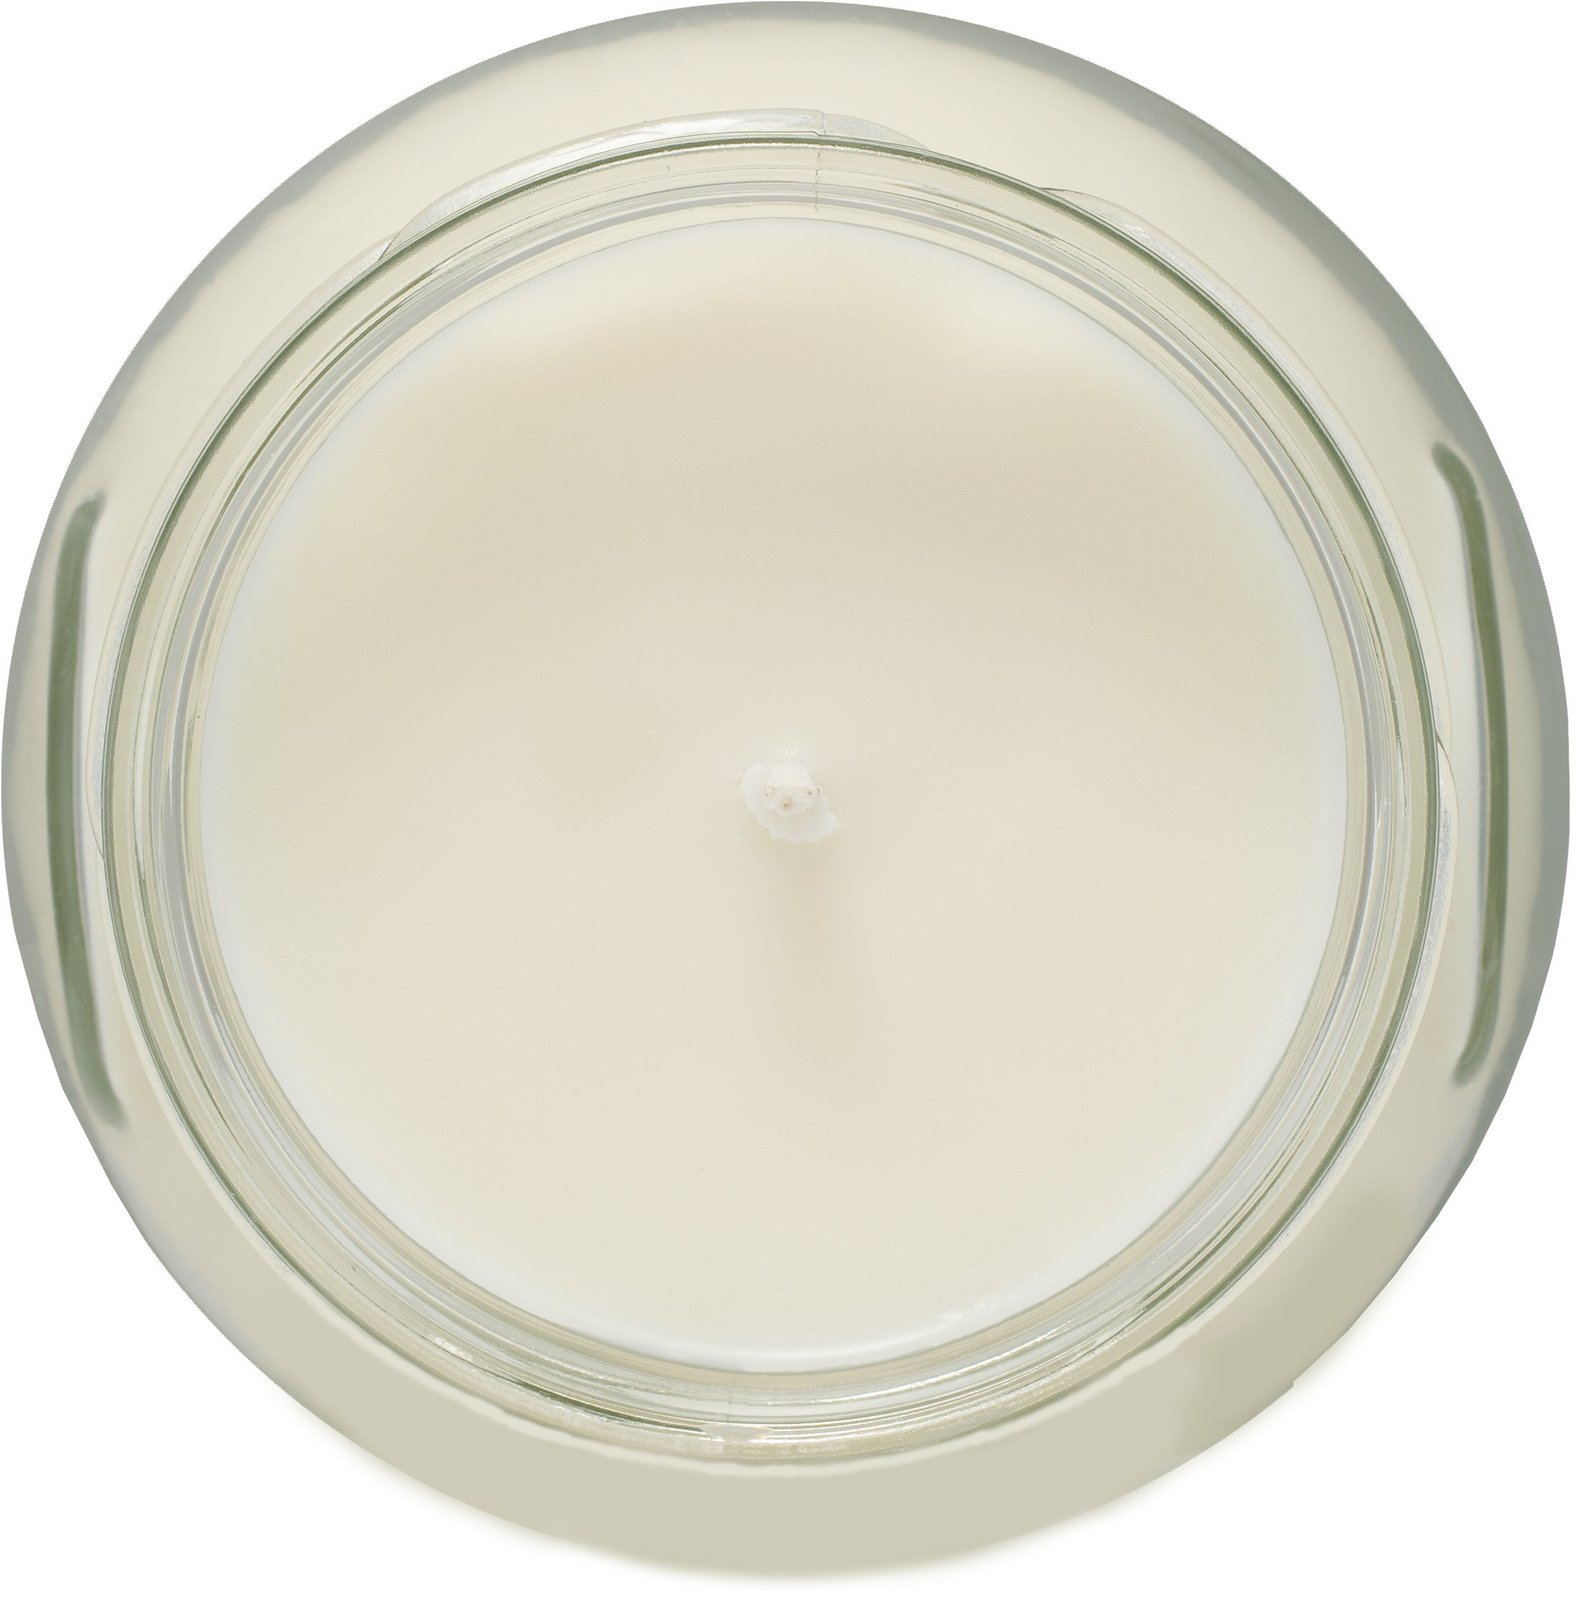 Premium 100% Soy Tureen Candle - 8 oz. - Acorn Harvest: This fragrance is a w...